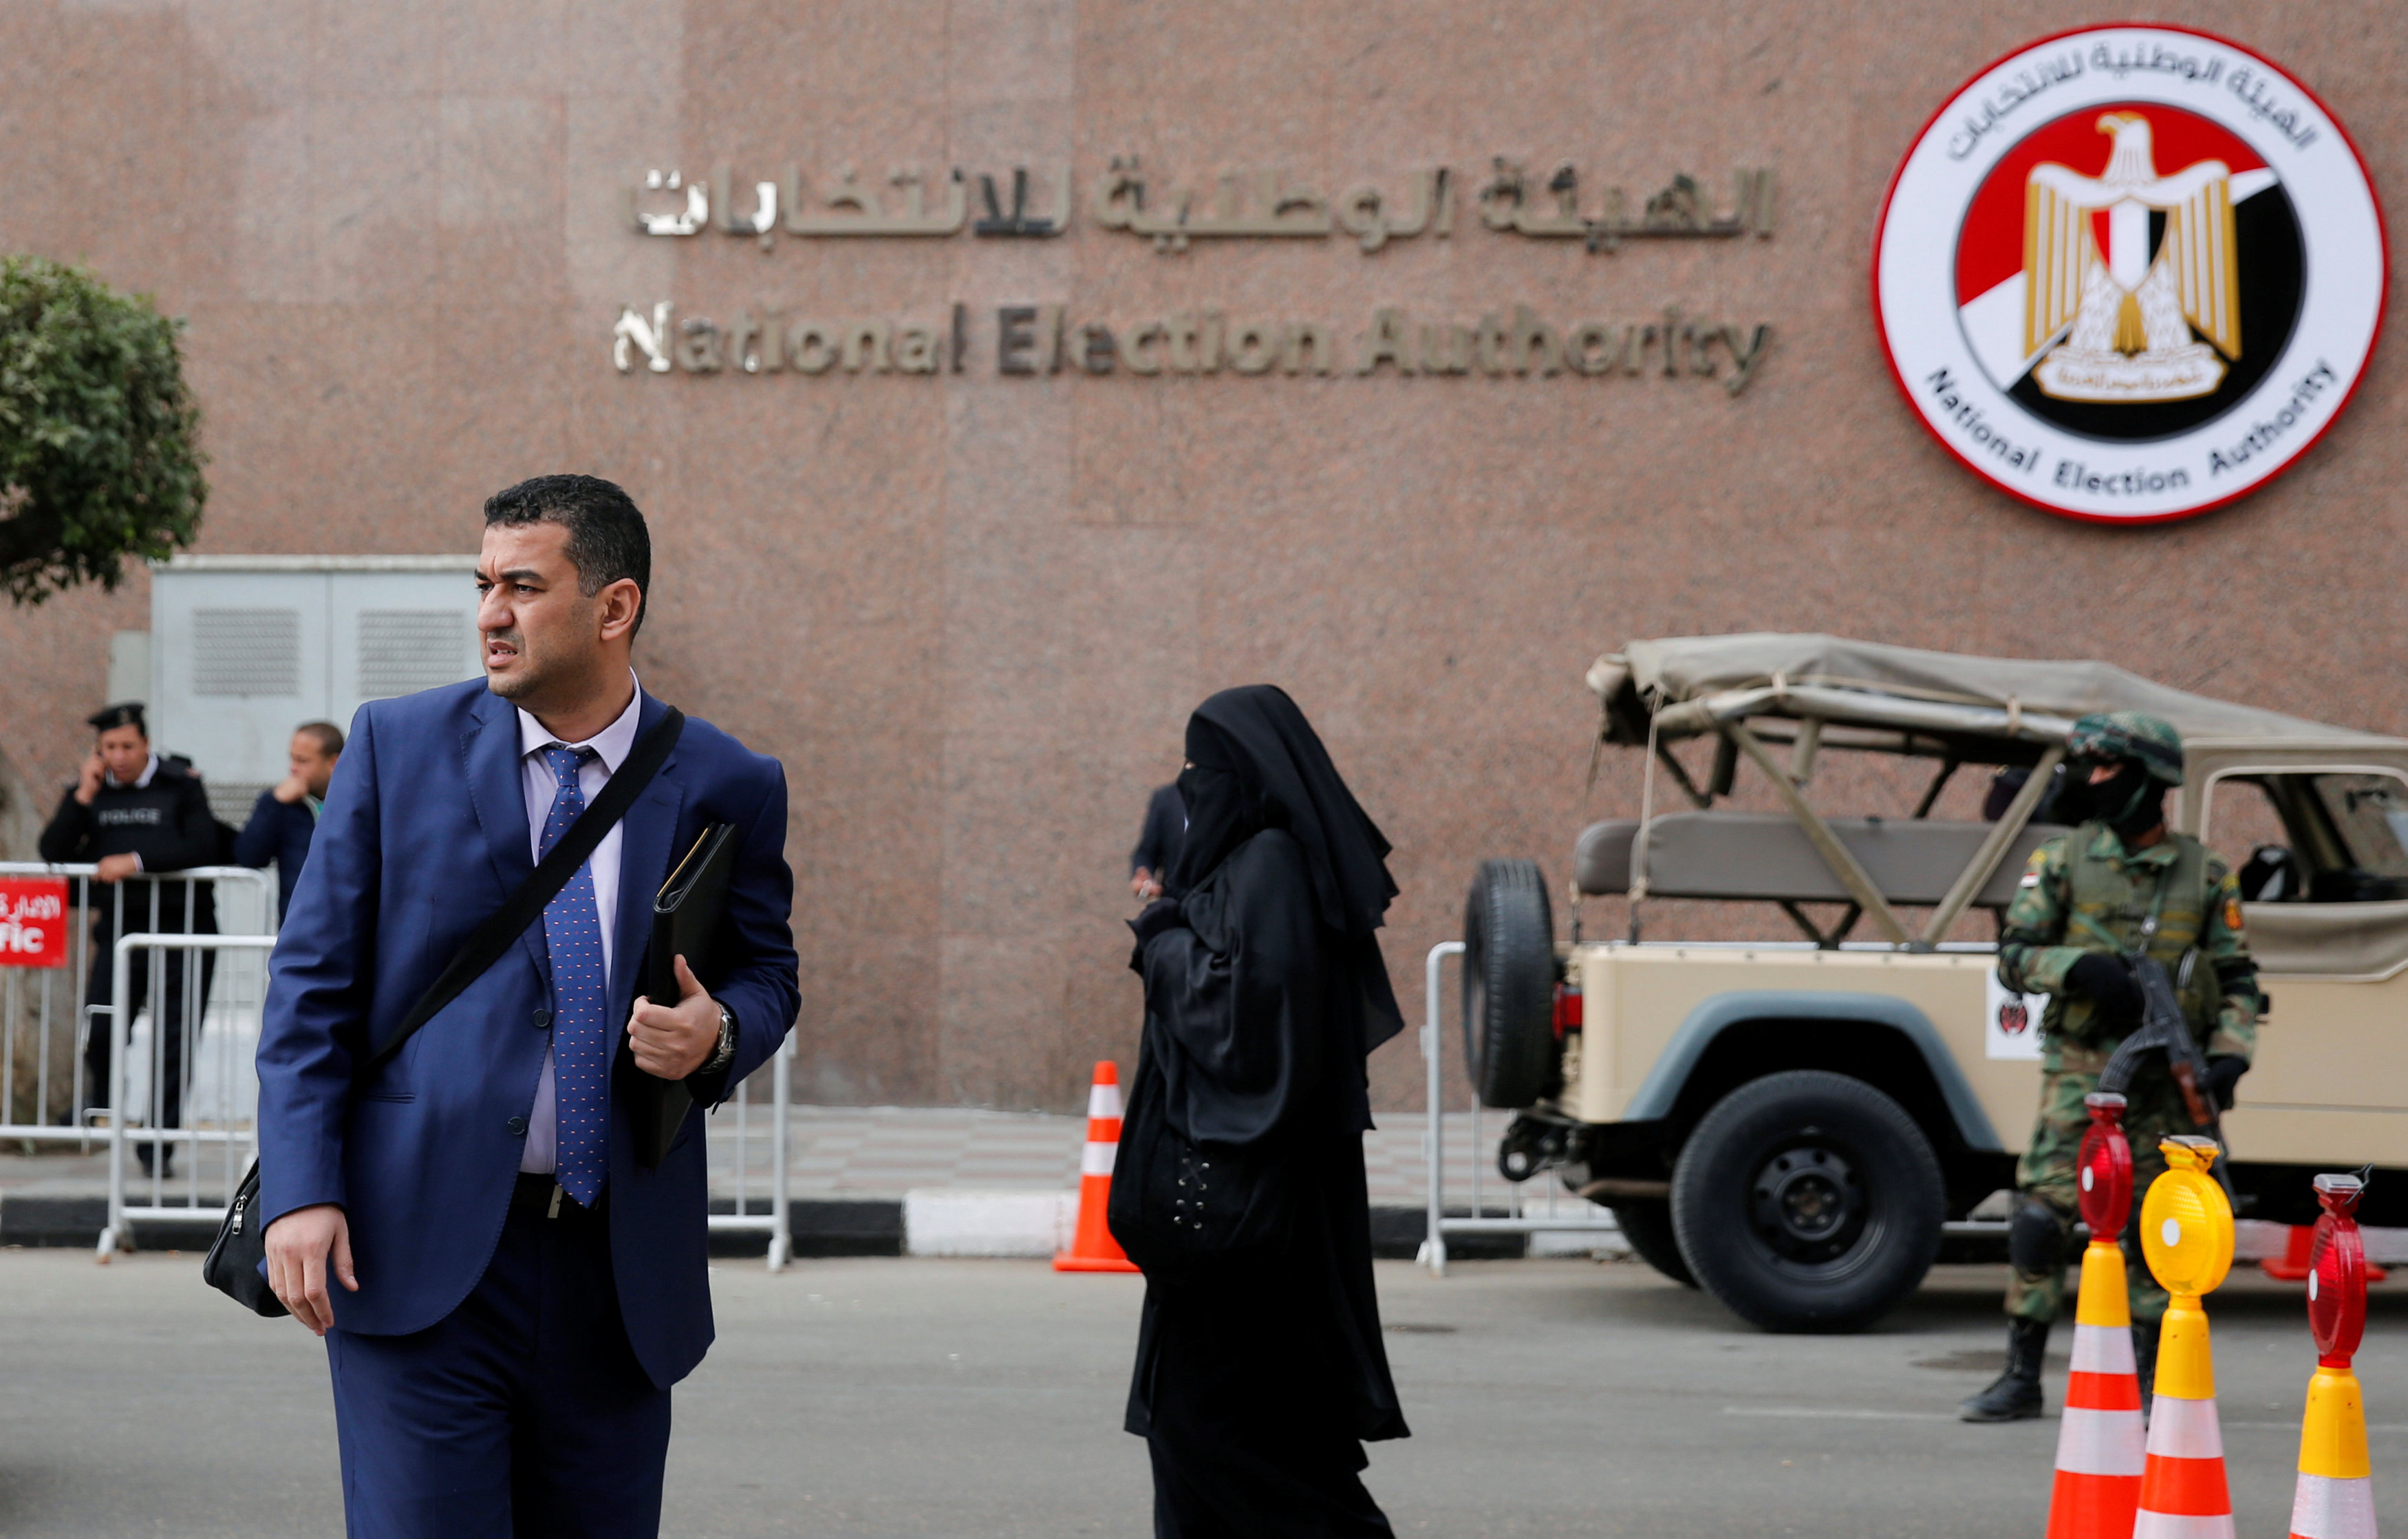 Leading opposition figures call for boycott of Egypt's election